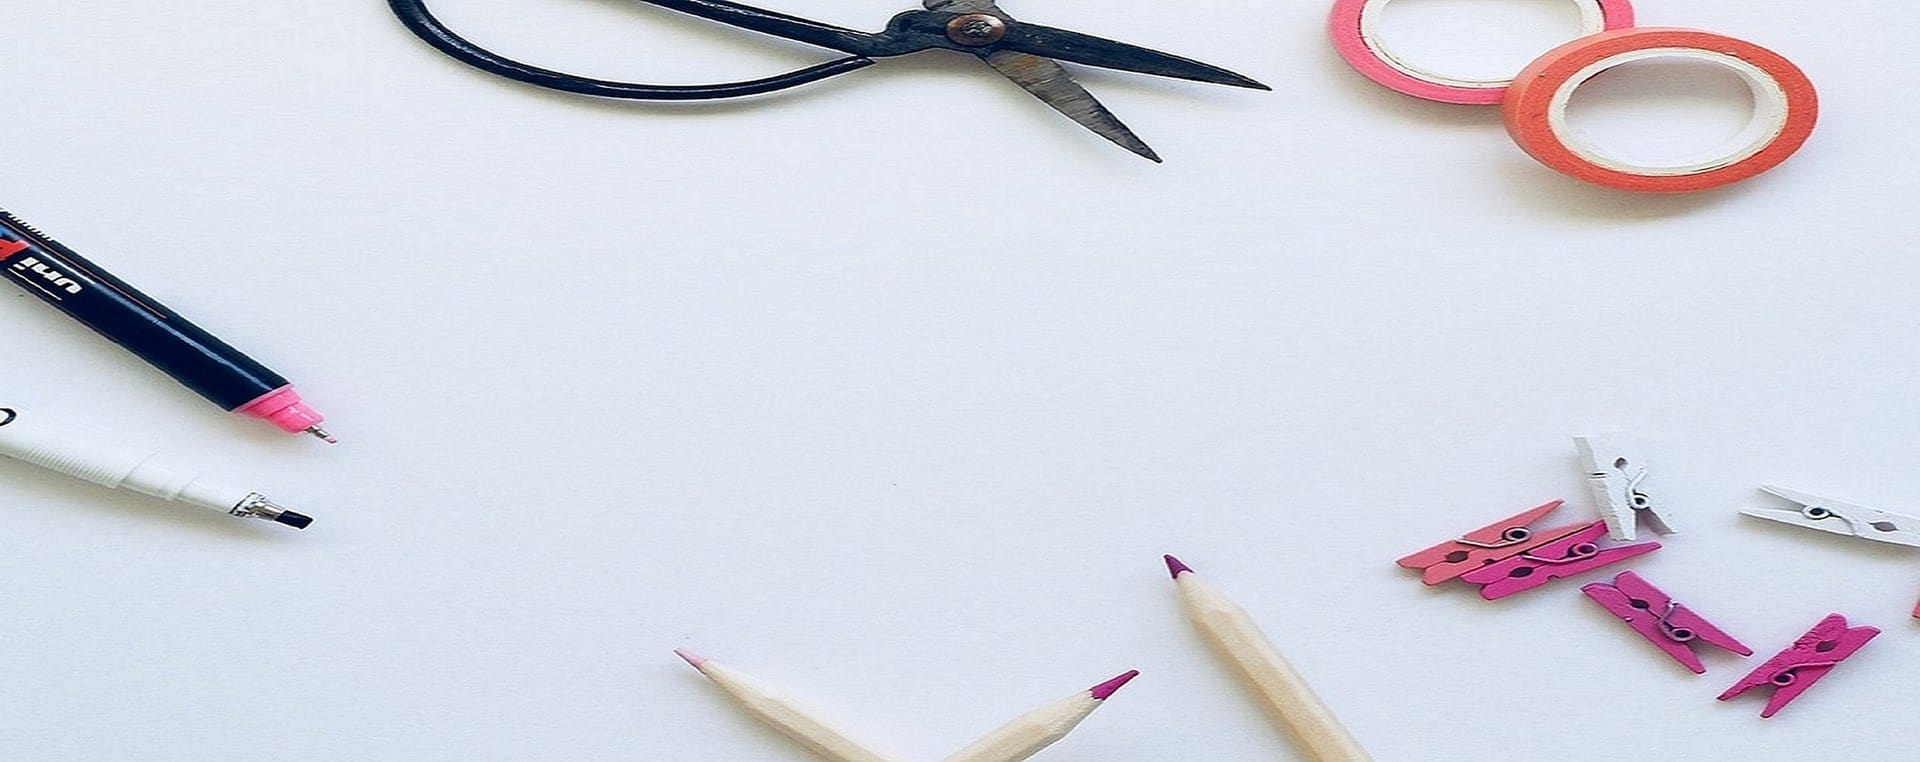 Cheap Craft Supplies Online Australia Hobby And Craft Stores